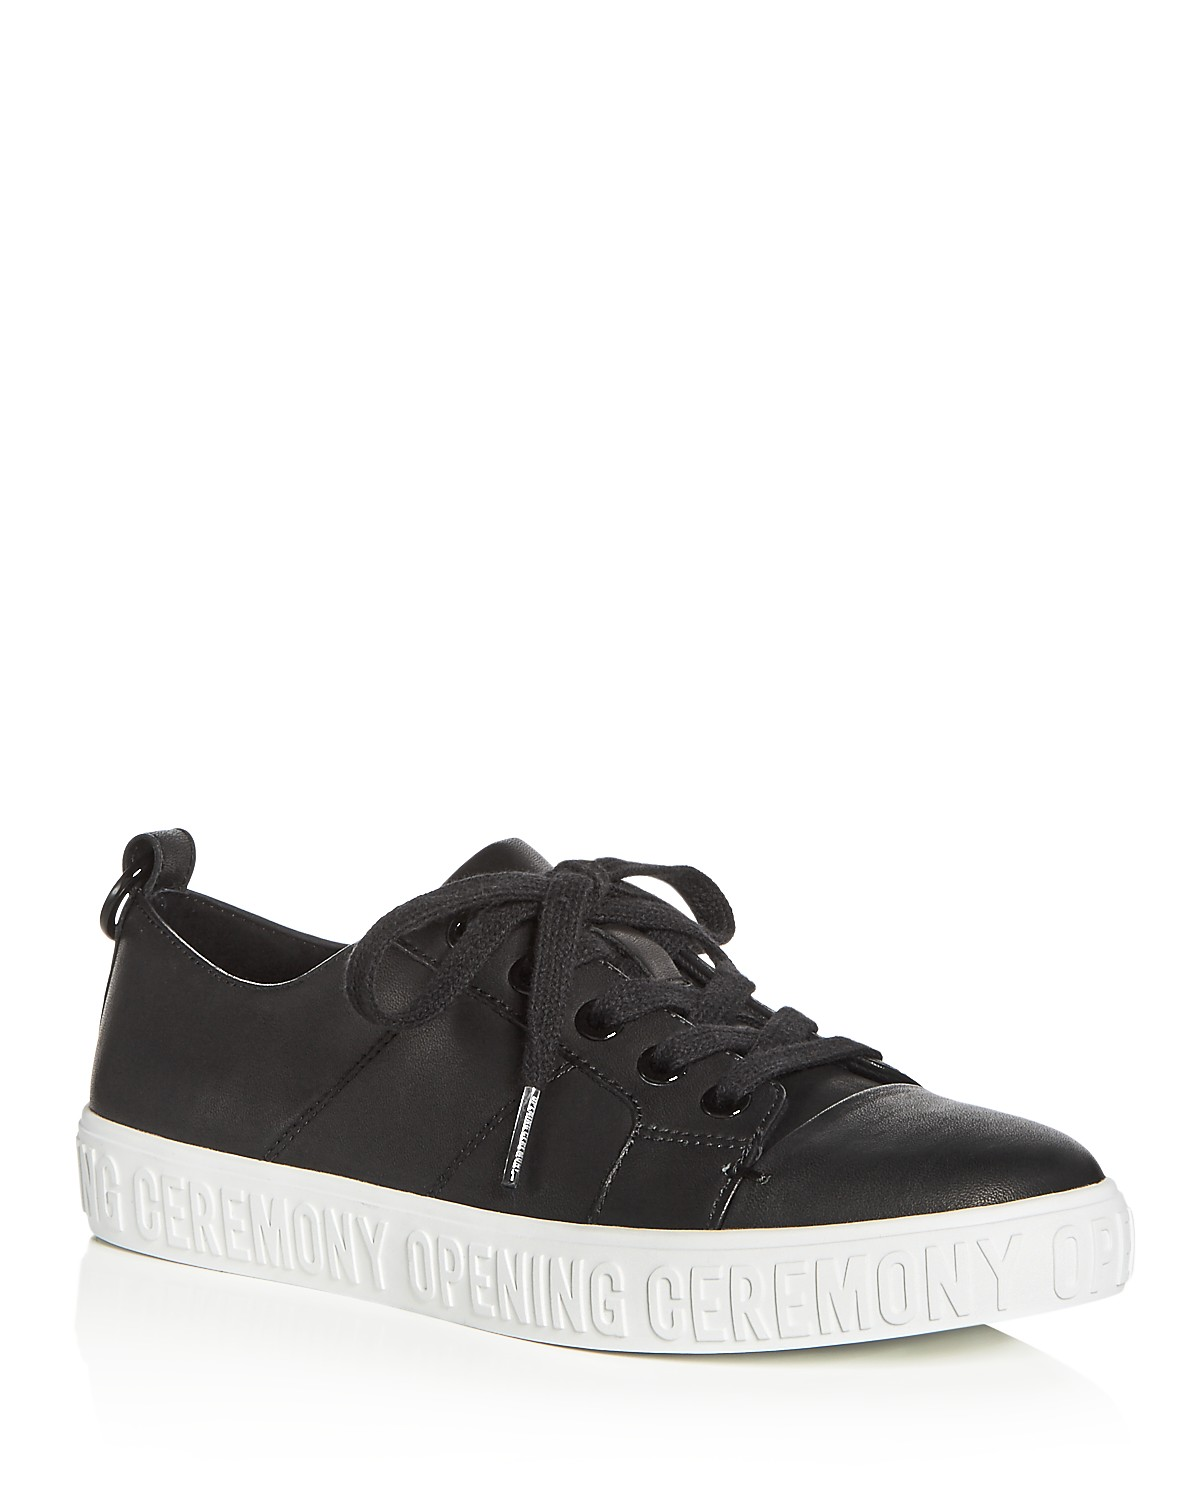 Opening Ceremony Women's La Cienega Leather Lace Up Sneakers iLtCpPxZkT